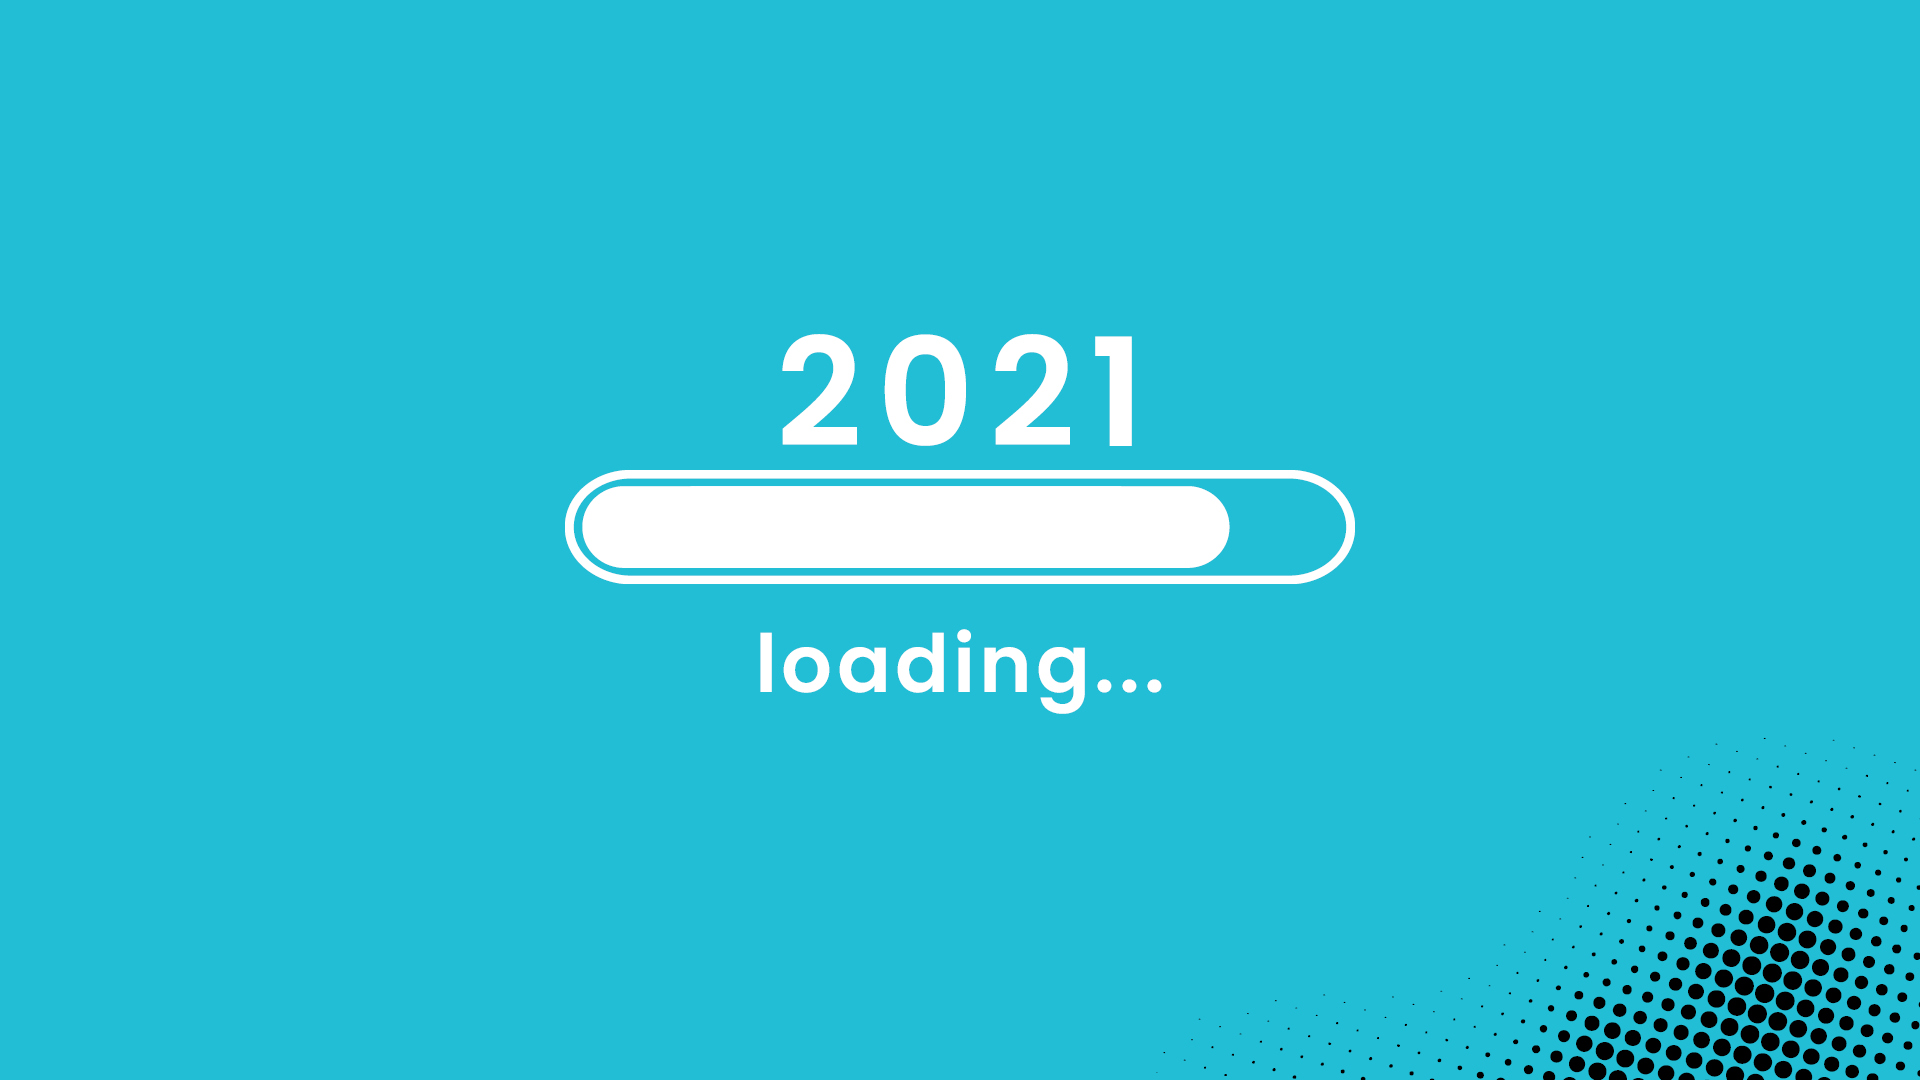 My technology predictions for 2021: tackling technical debt moves up the priority list